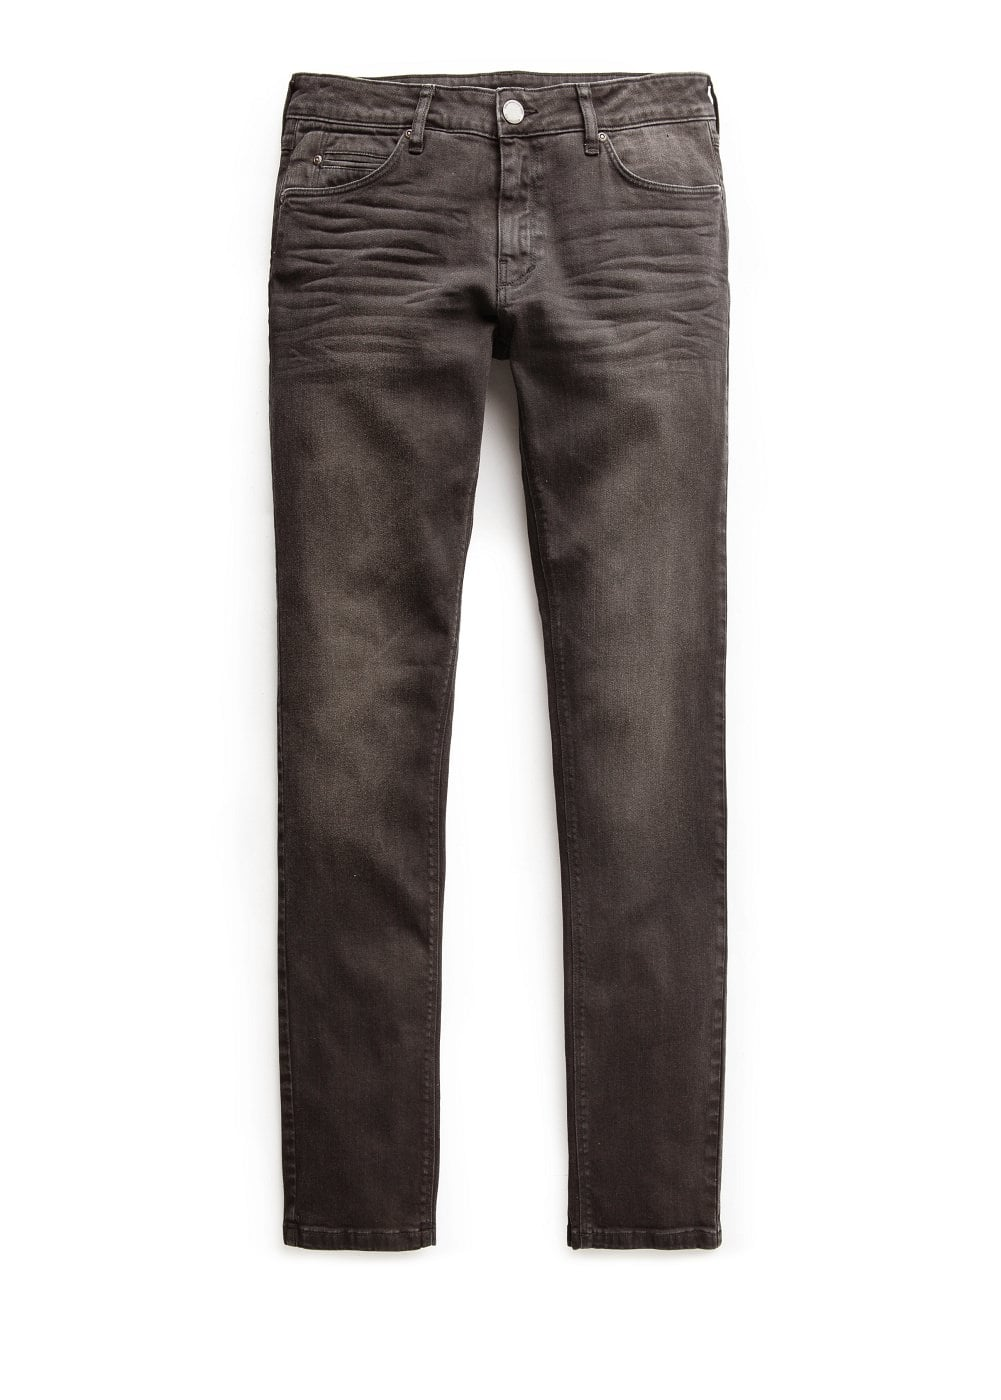 Jeans alex slim-fit negros | MANGO